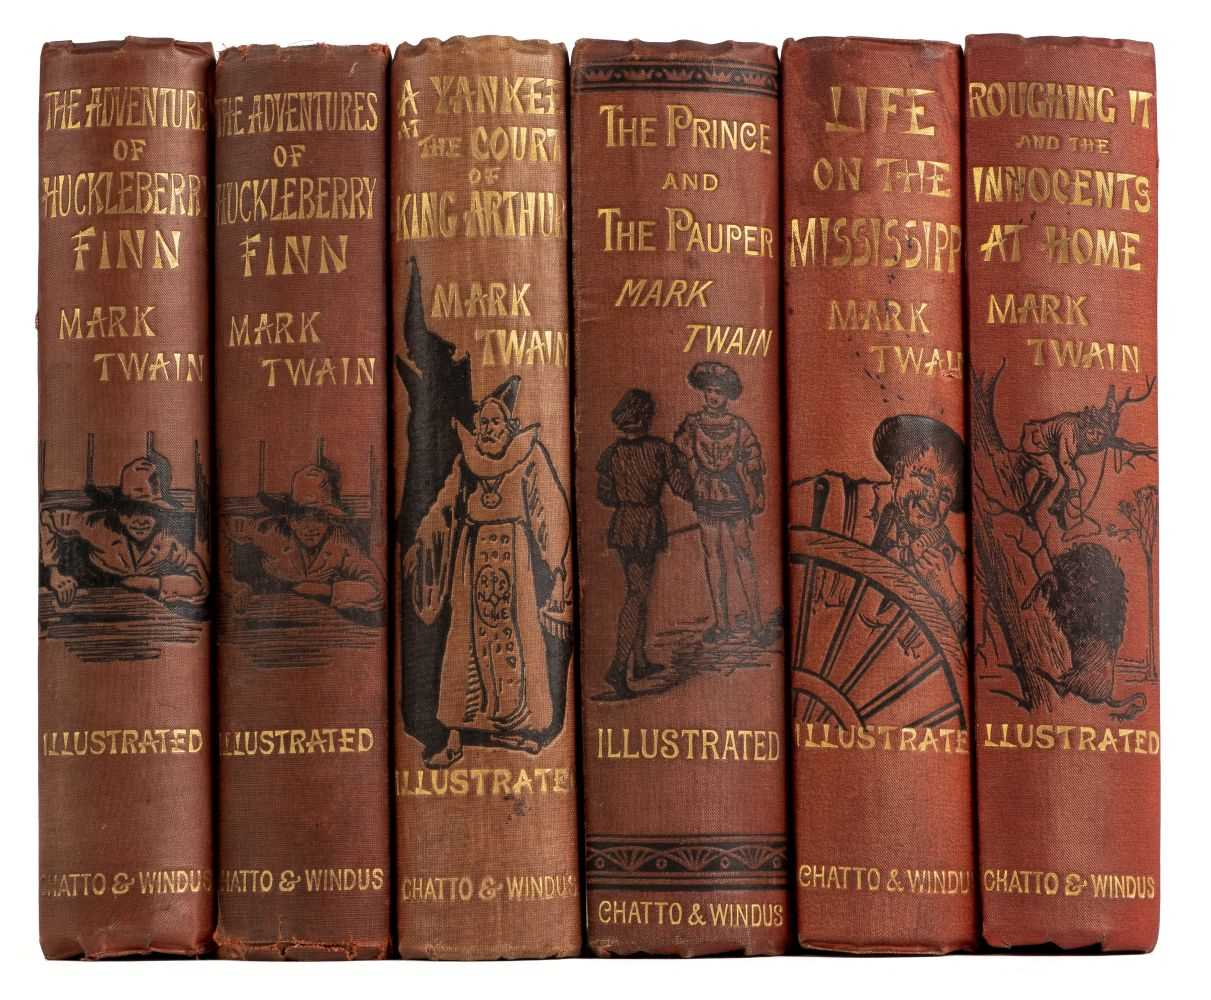 Lot 535-Twain (Mark). The Adventures of Huckleberry Finn, 1st edition, 1884, & others